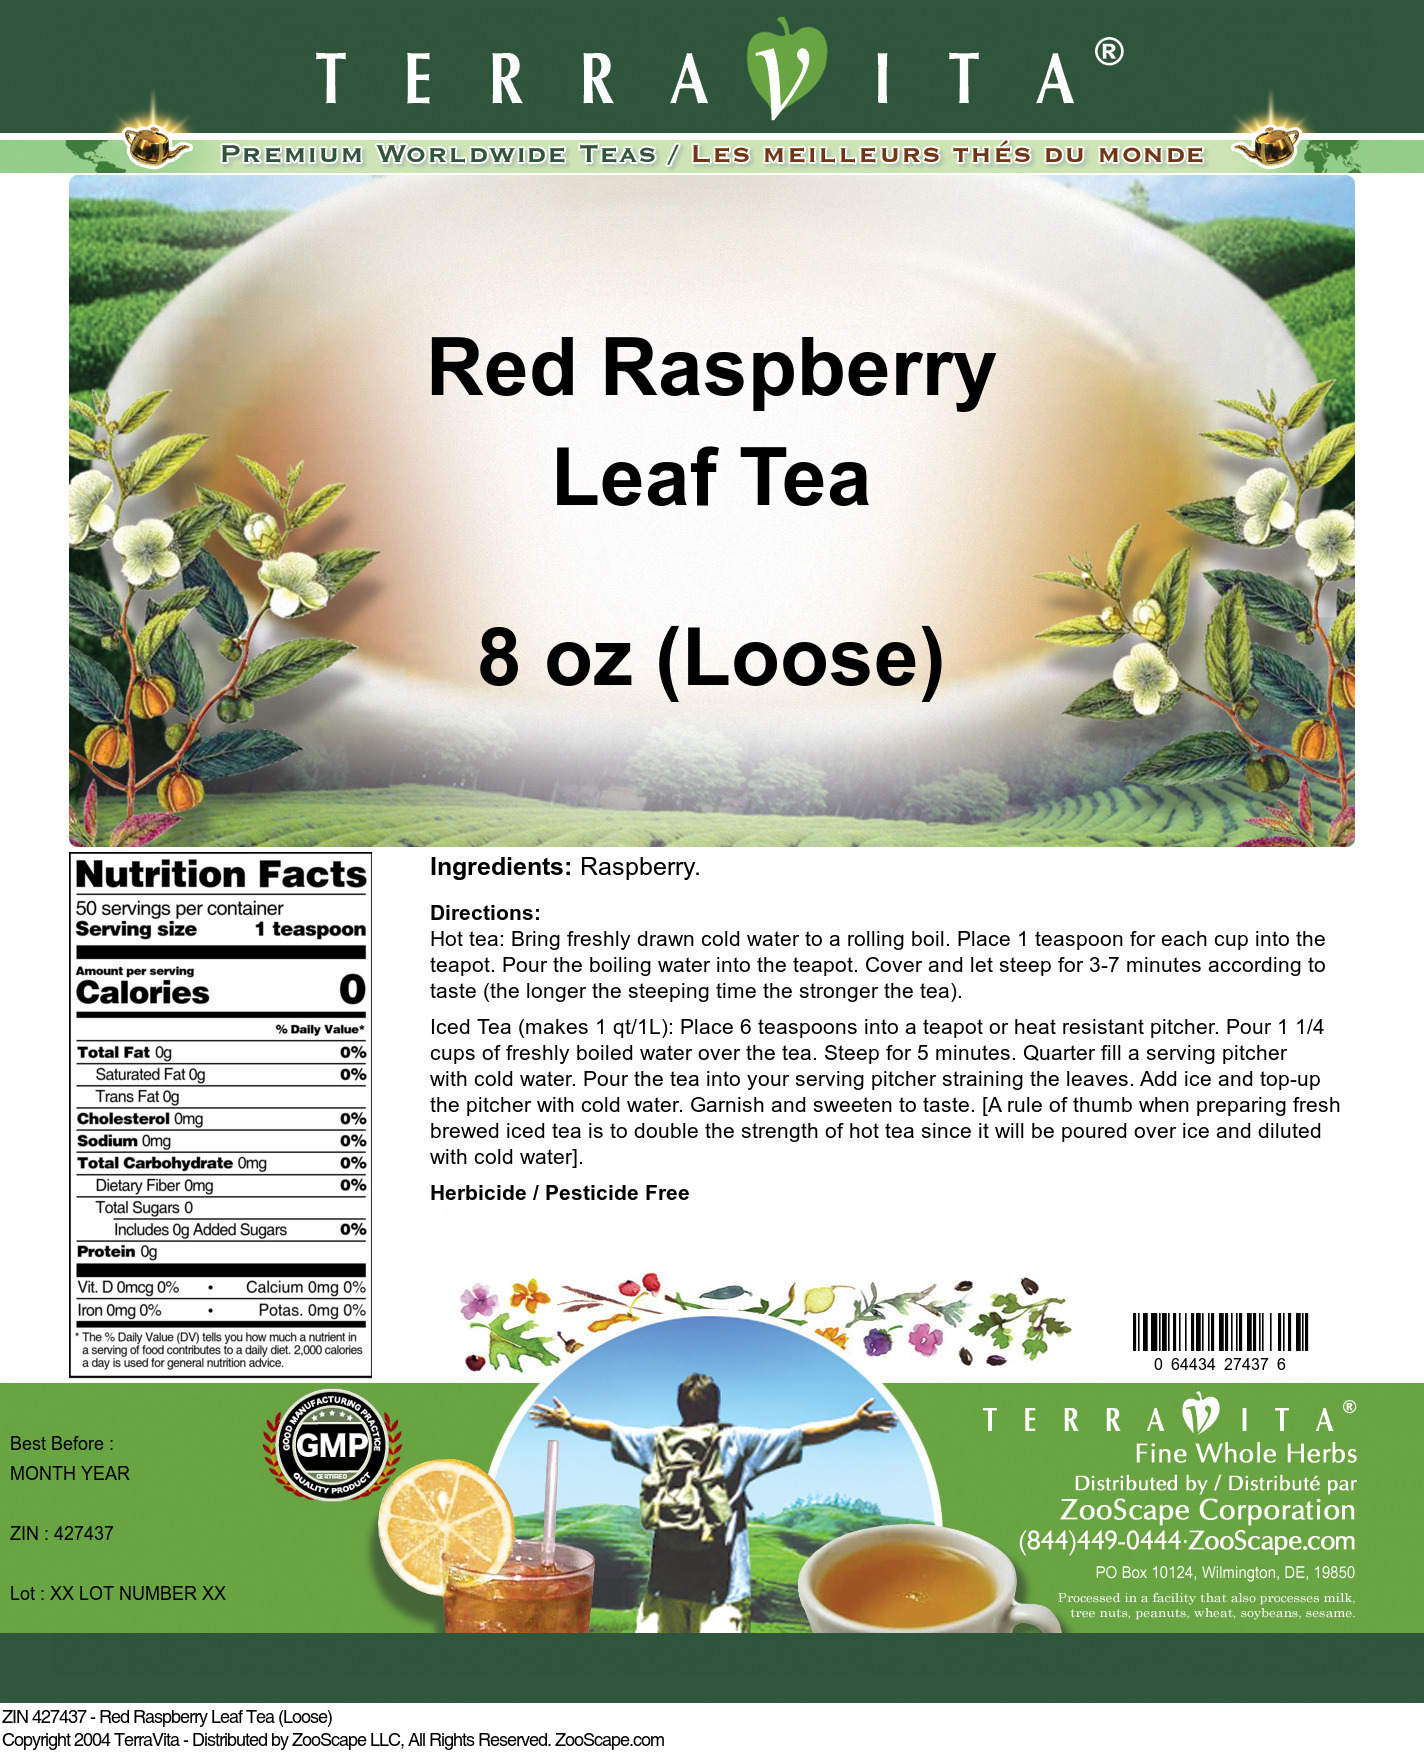 Red Raspberry Leaf Tea (Loose) - Label